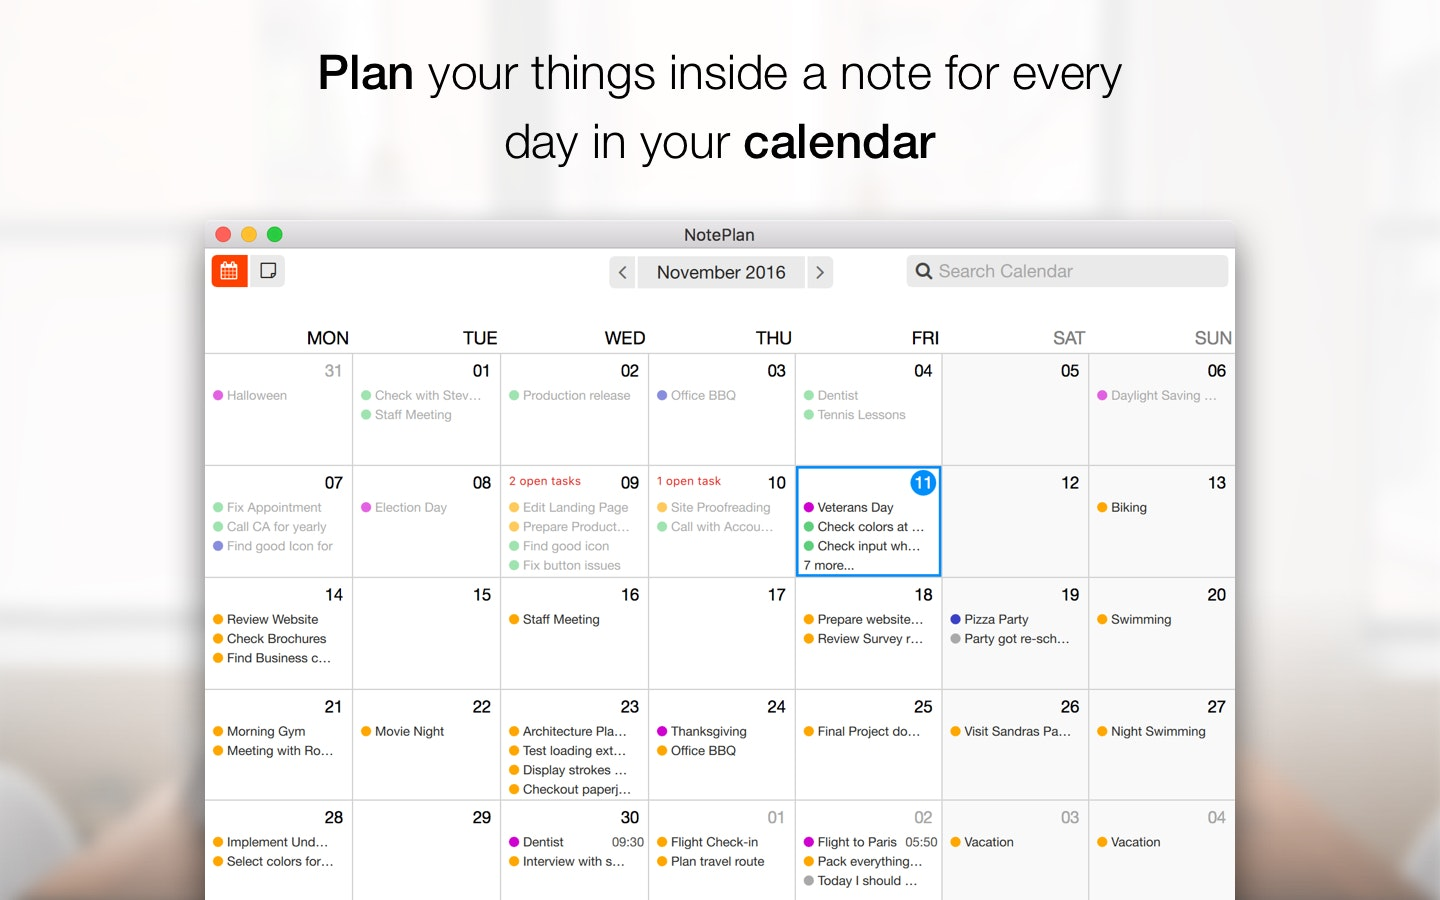 Plan your things inside a note for every day in your NotePlan calendar